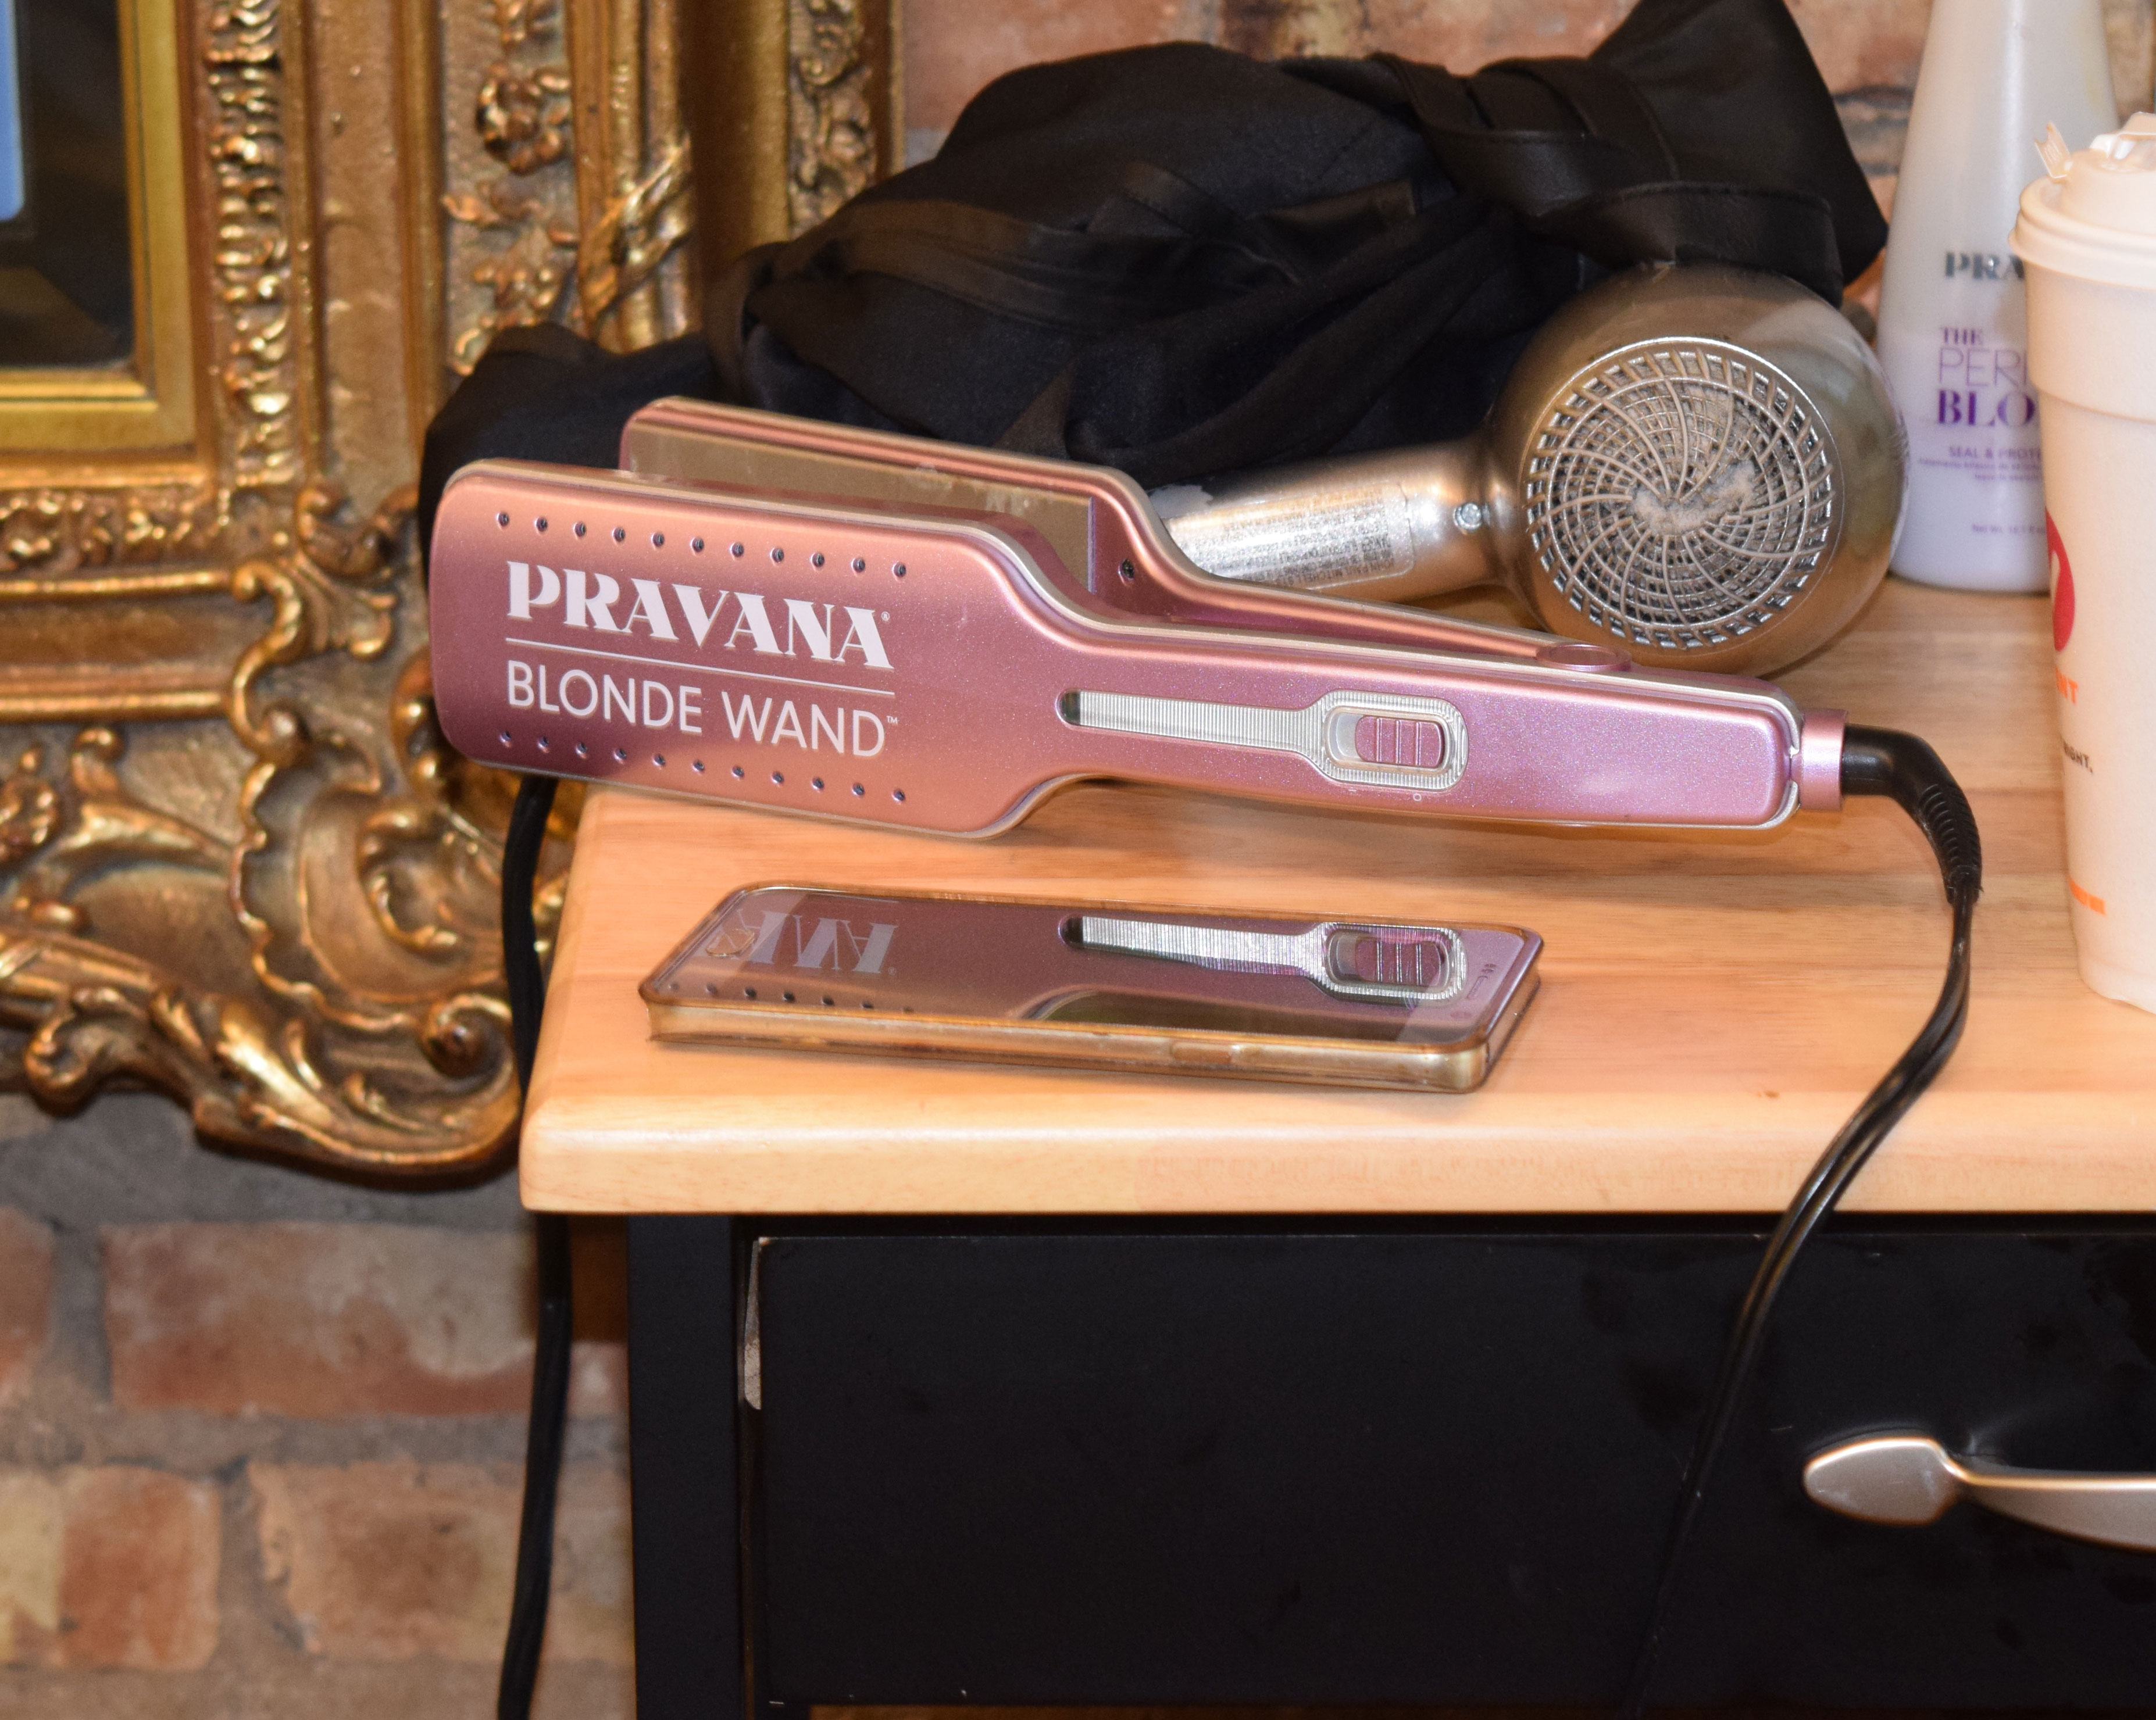 Your Questions About Pravana's Blonde Wand, Answered